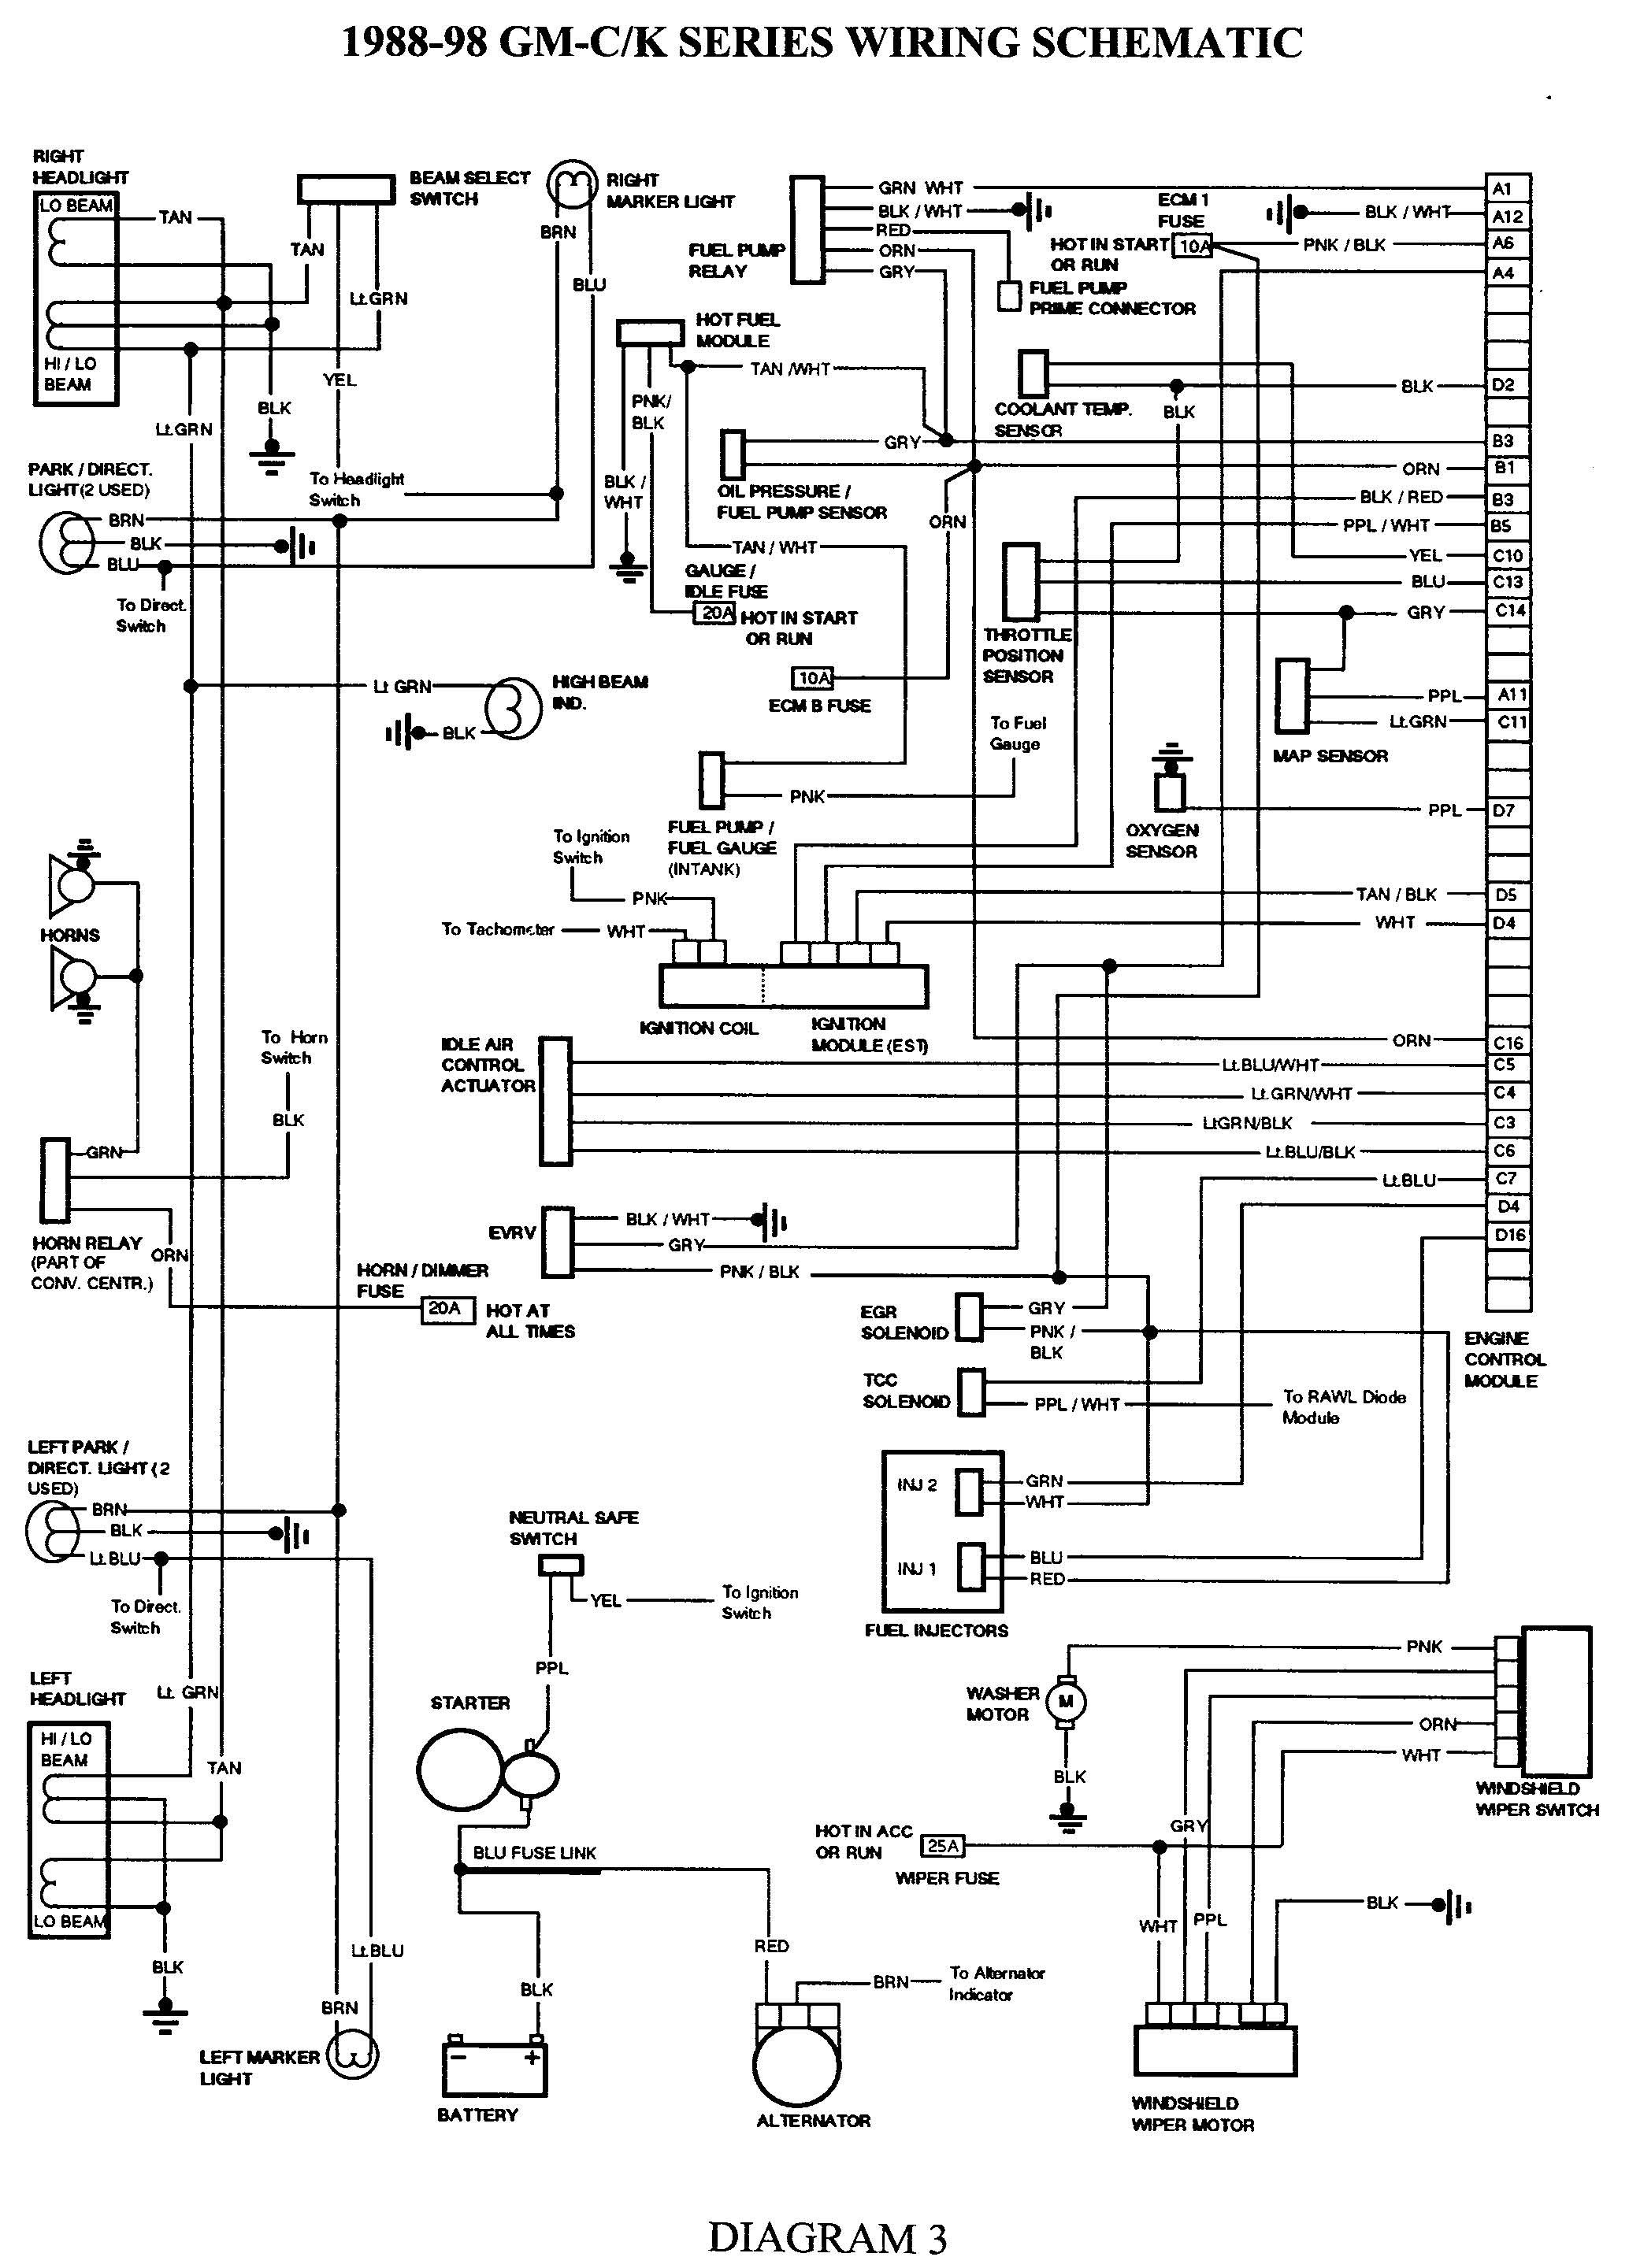 coil wiring diagram 1990 gmc 350 all kind of wiring diagrams u2022 rh investatlanta co